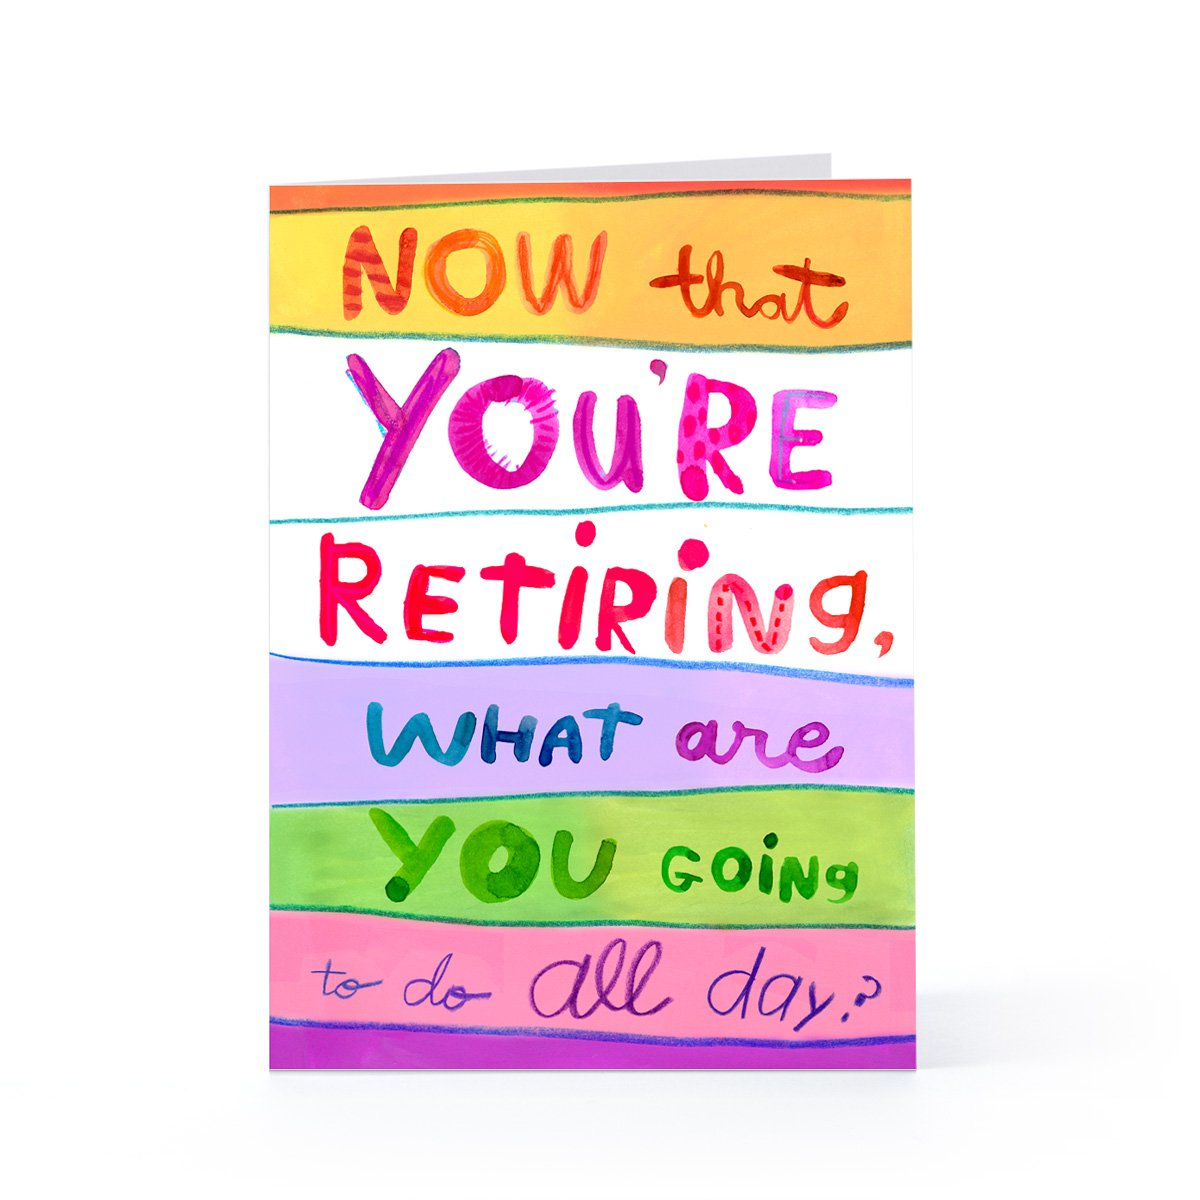 Crazy image with regard to retirement card printable